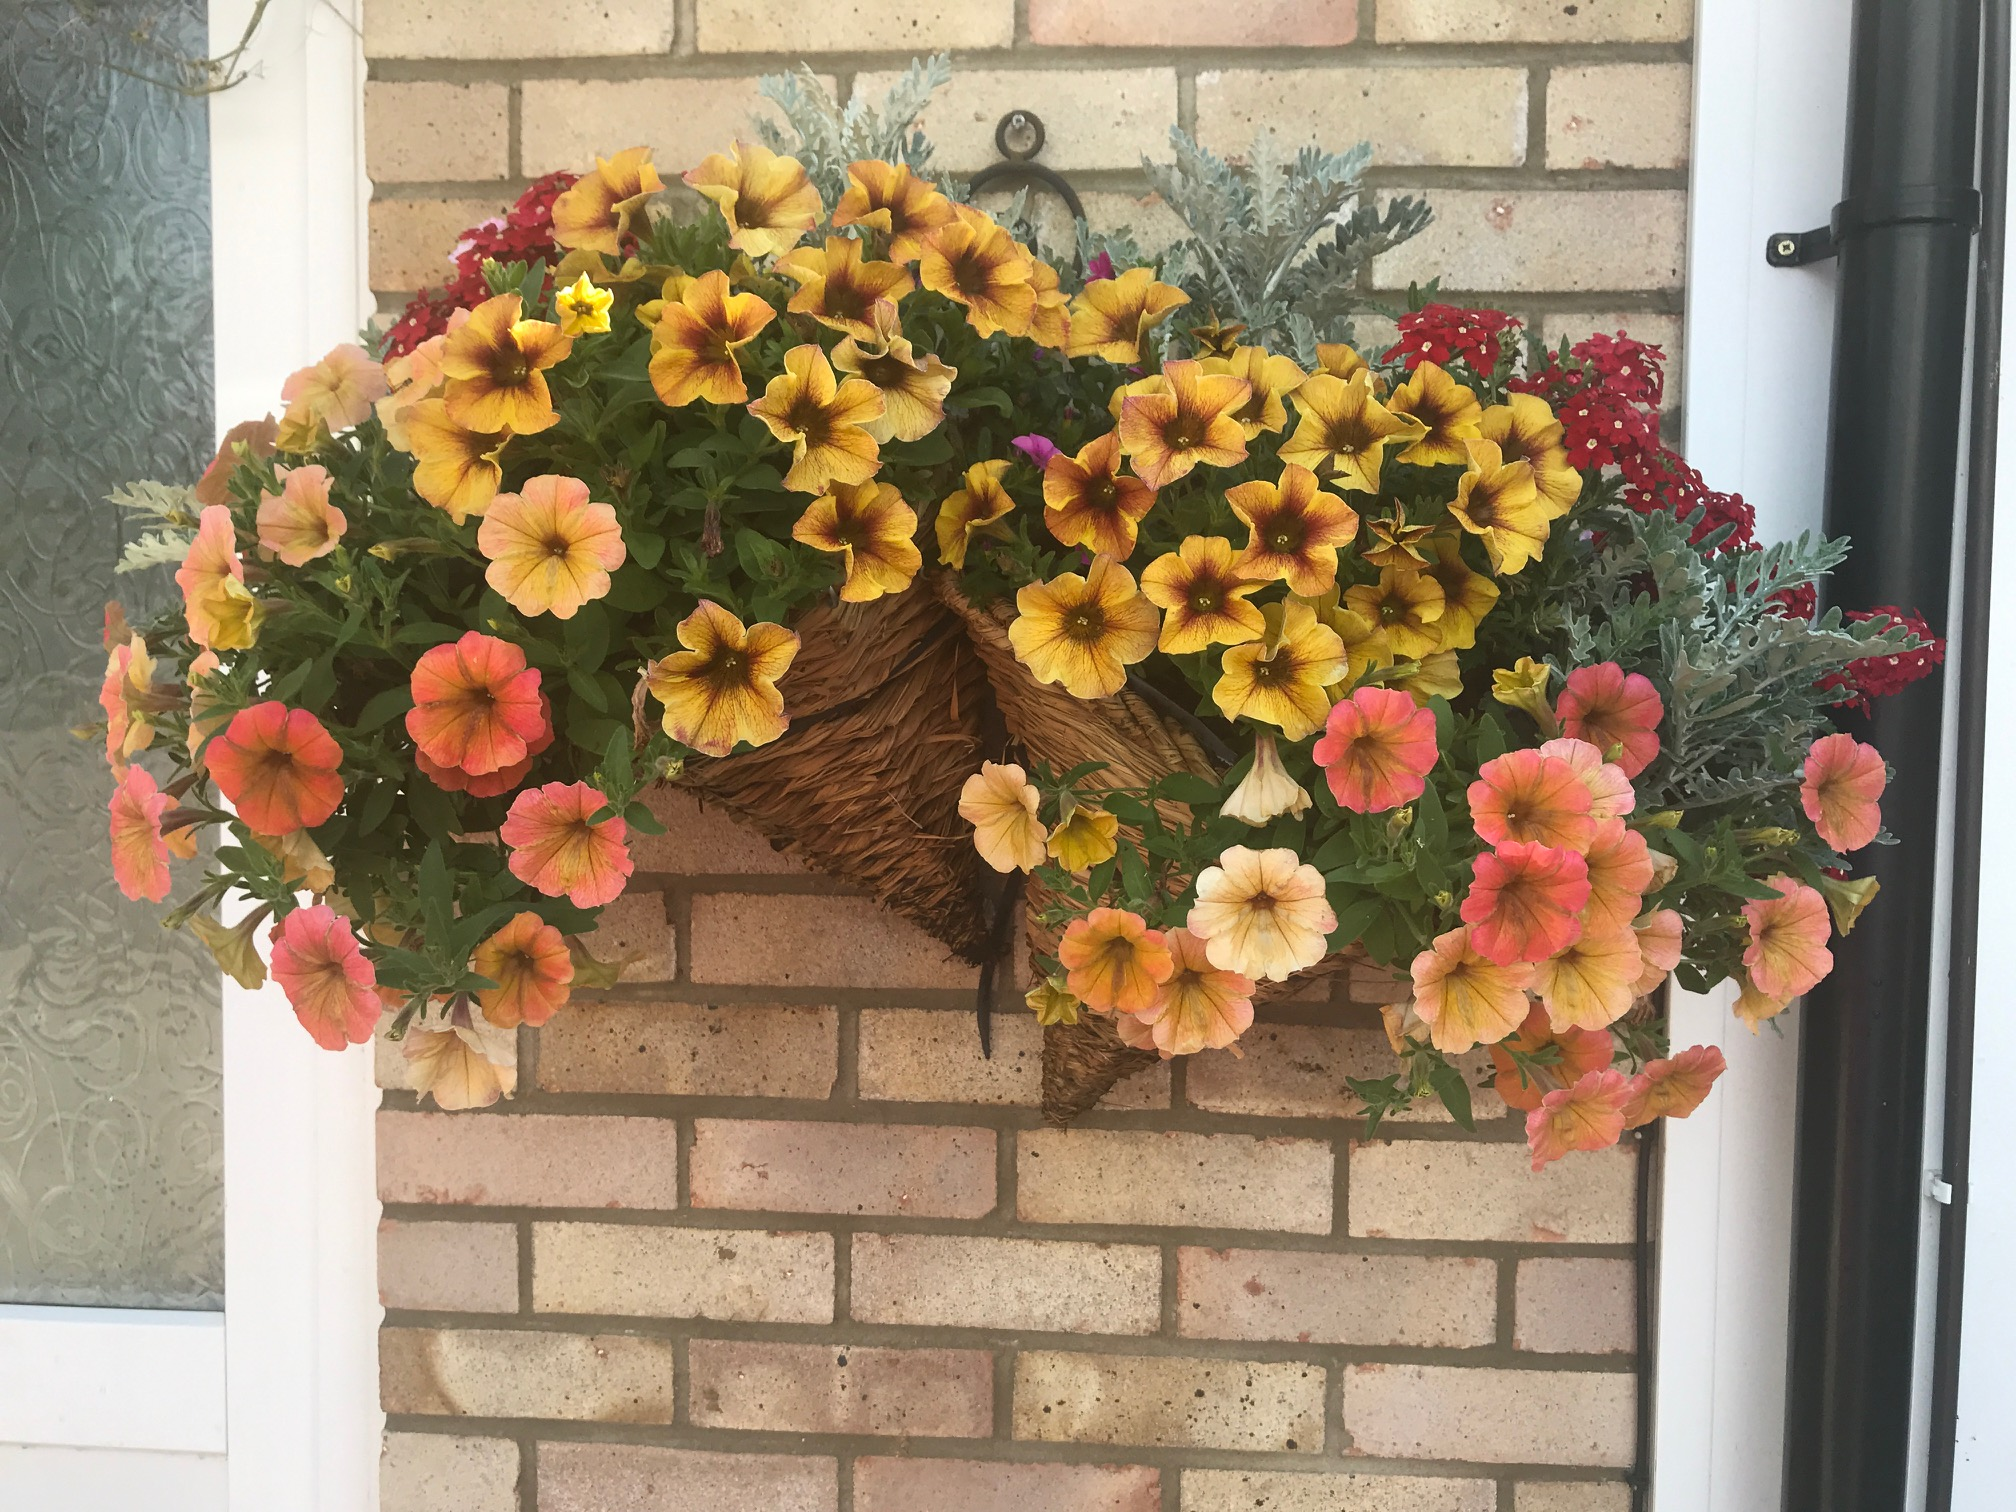 Ruth's hanging basket